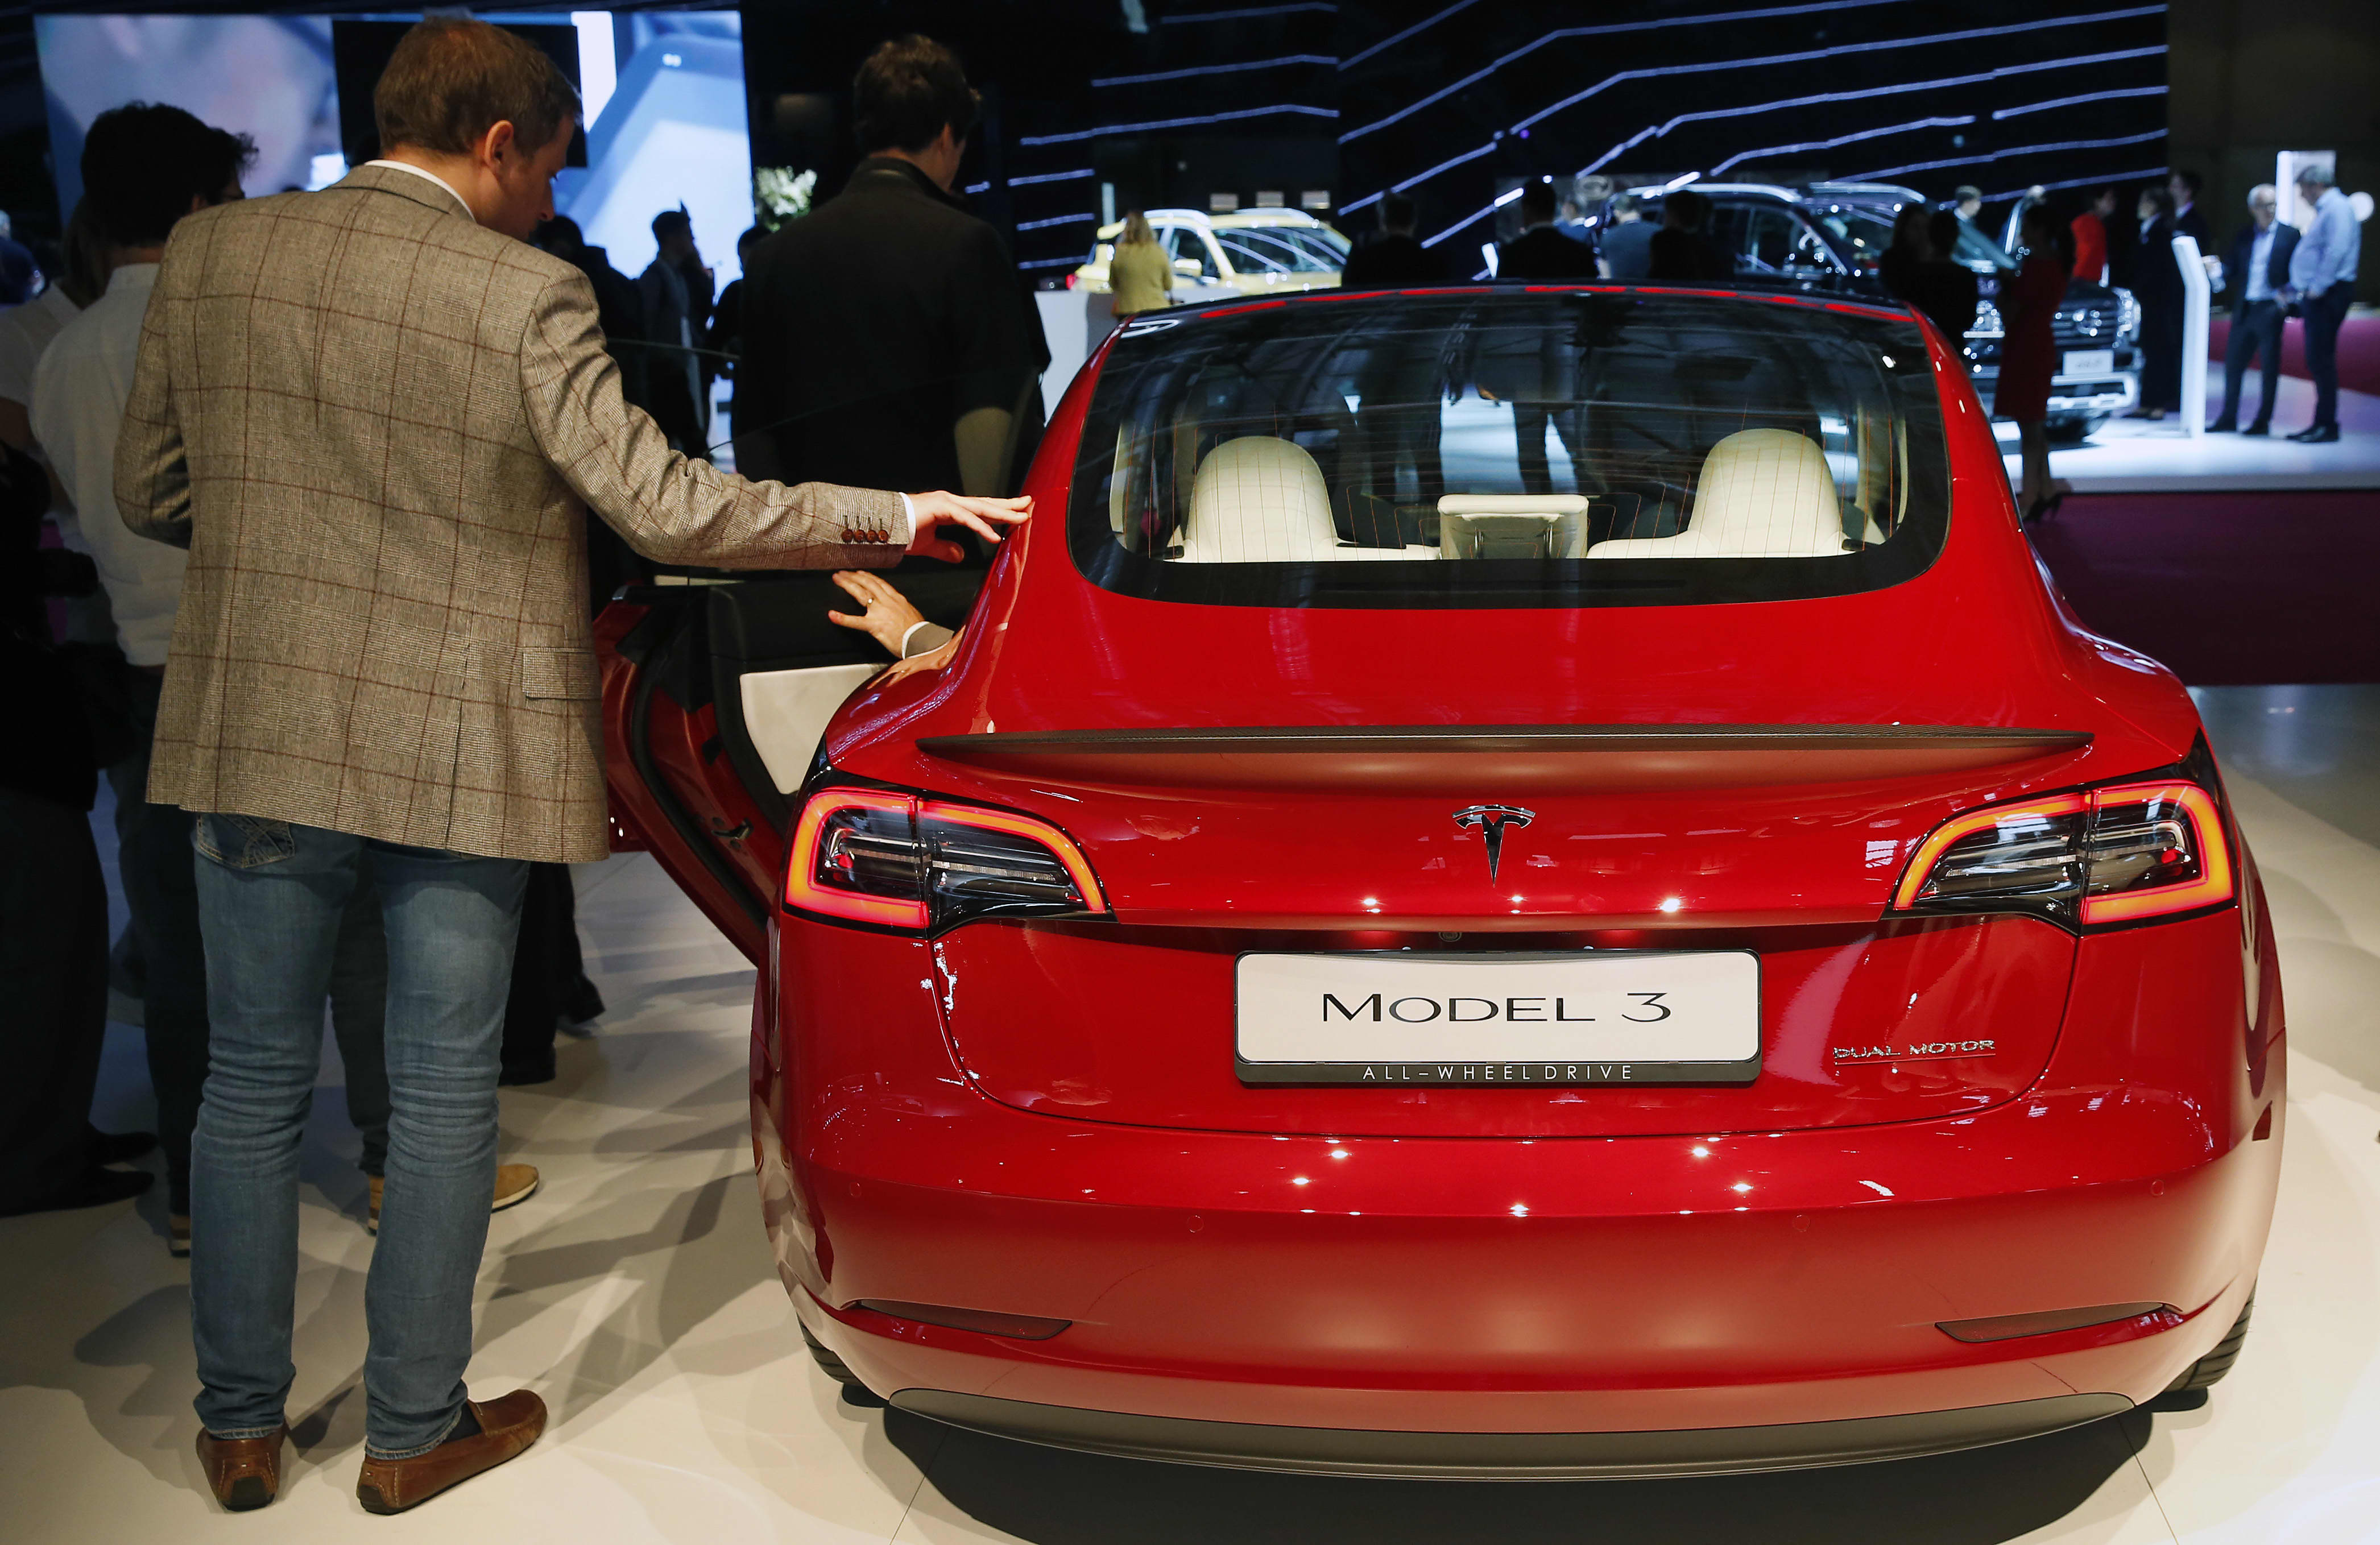 With Tesla up 55% in last 3 months, here's where two pros would buy in